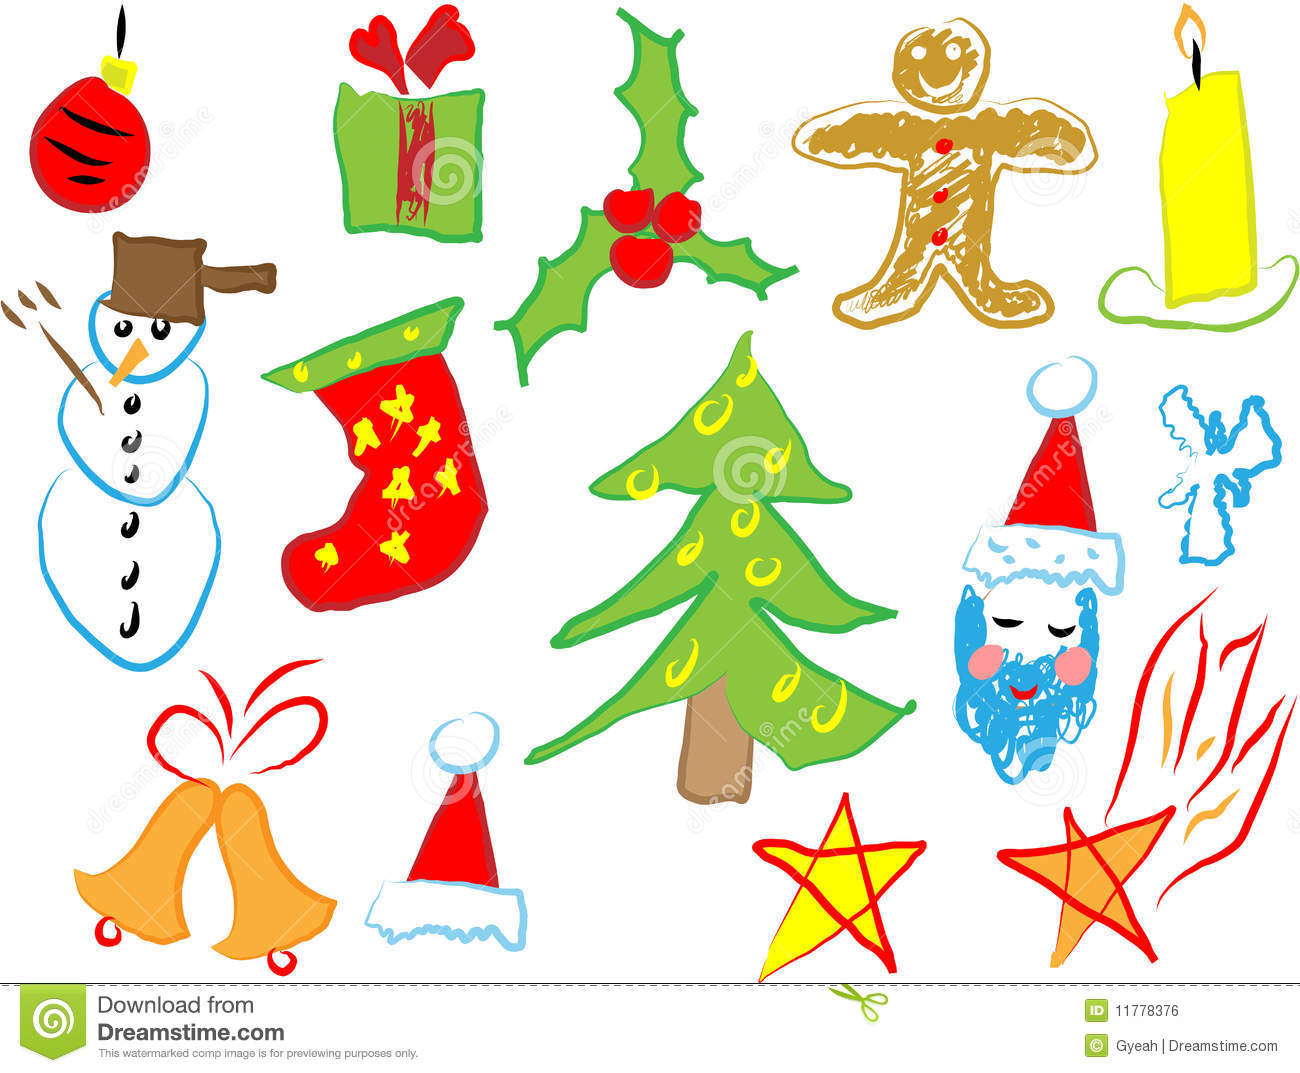 Christmas Icons Draw By A Child Royalty Free Stock Image Image 11778376